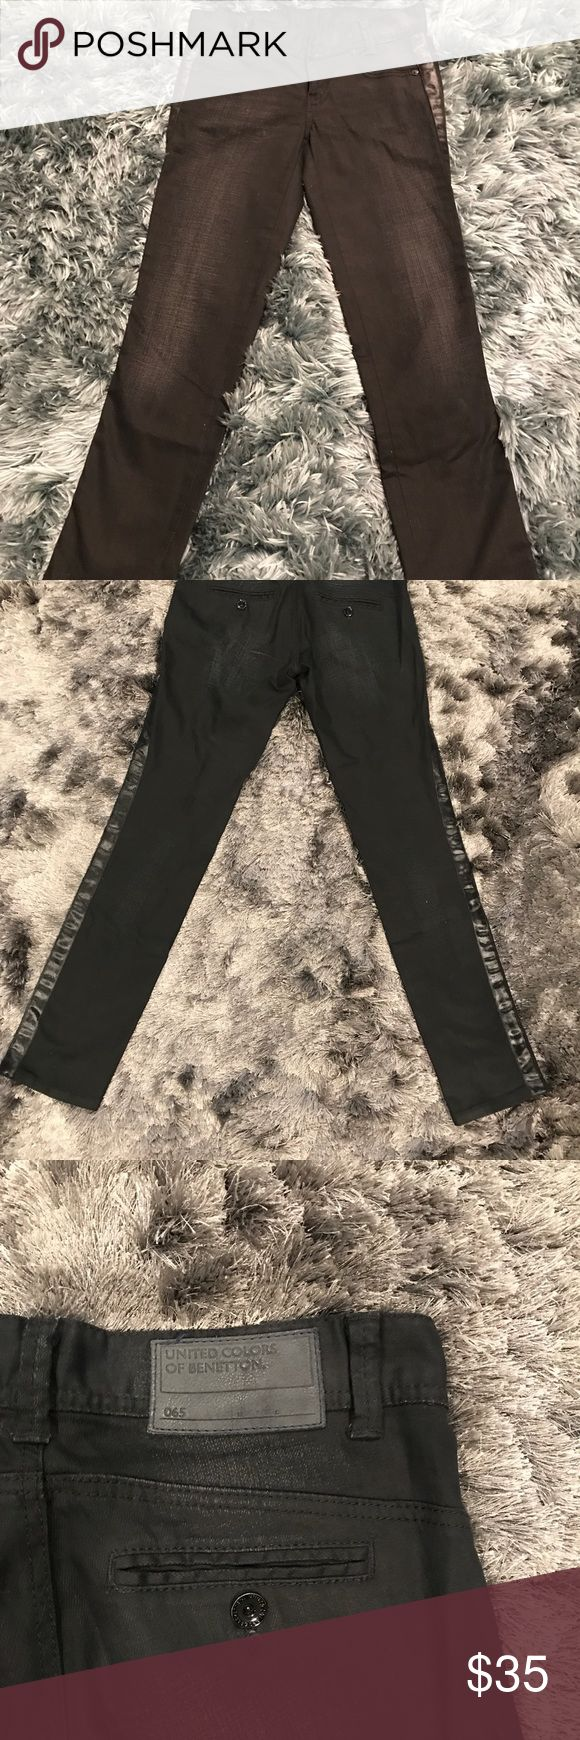 """United Colors of Benetton Tuxedo Skinny Jeans NWOT United Colors of Benetton black satin tuxedo skinny jean.  Would look very elegant with cropped blazer and heels! Details : Size 40/6 Waist 15.5"""" Outseam 37.5 Inseam 29.5"""" Rise  7"""" Ankle 6"""" United Colors Of Benetton Jeans Skinny"""